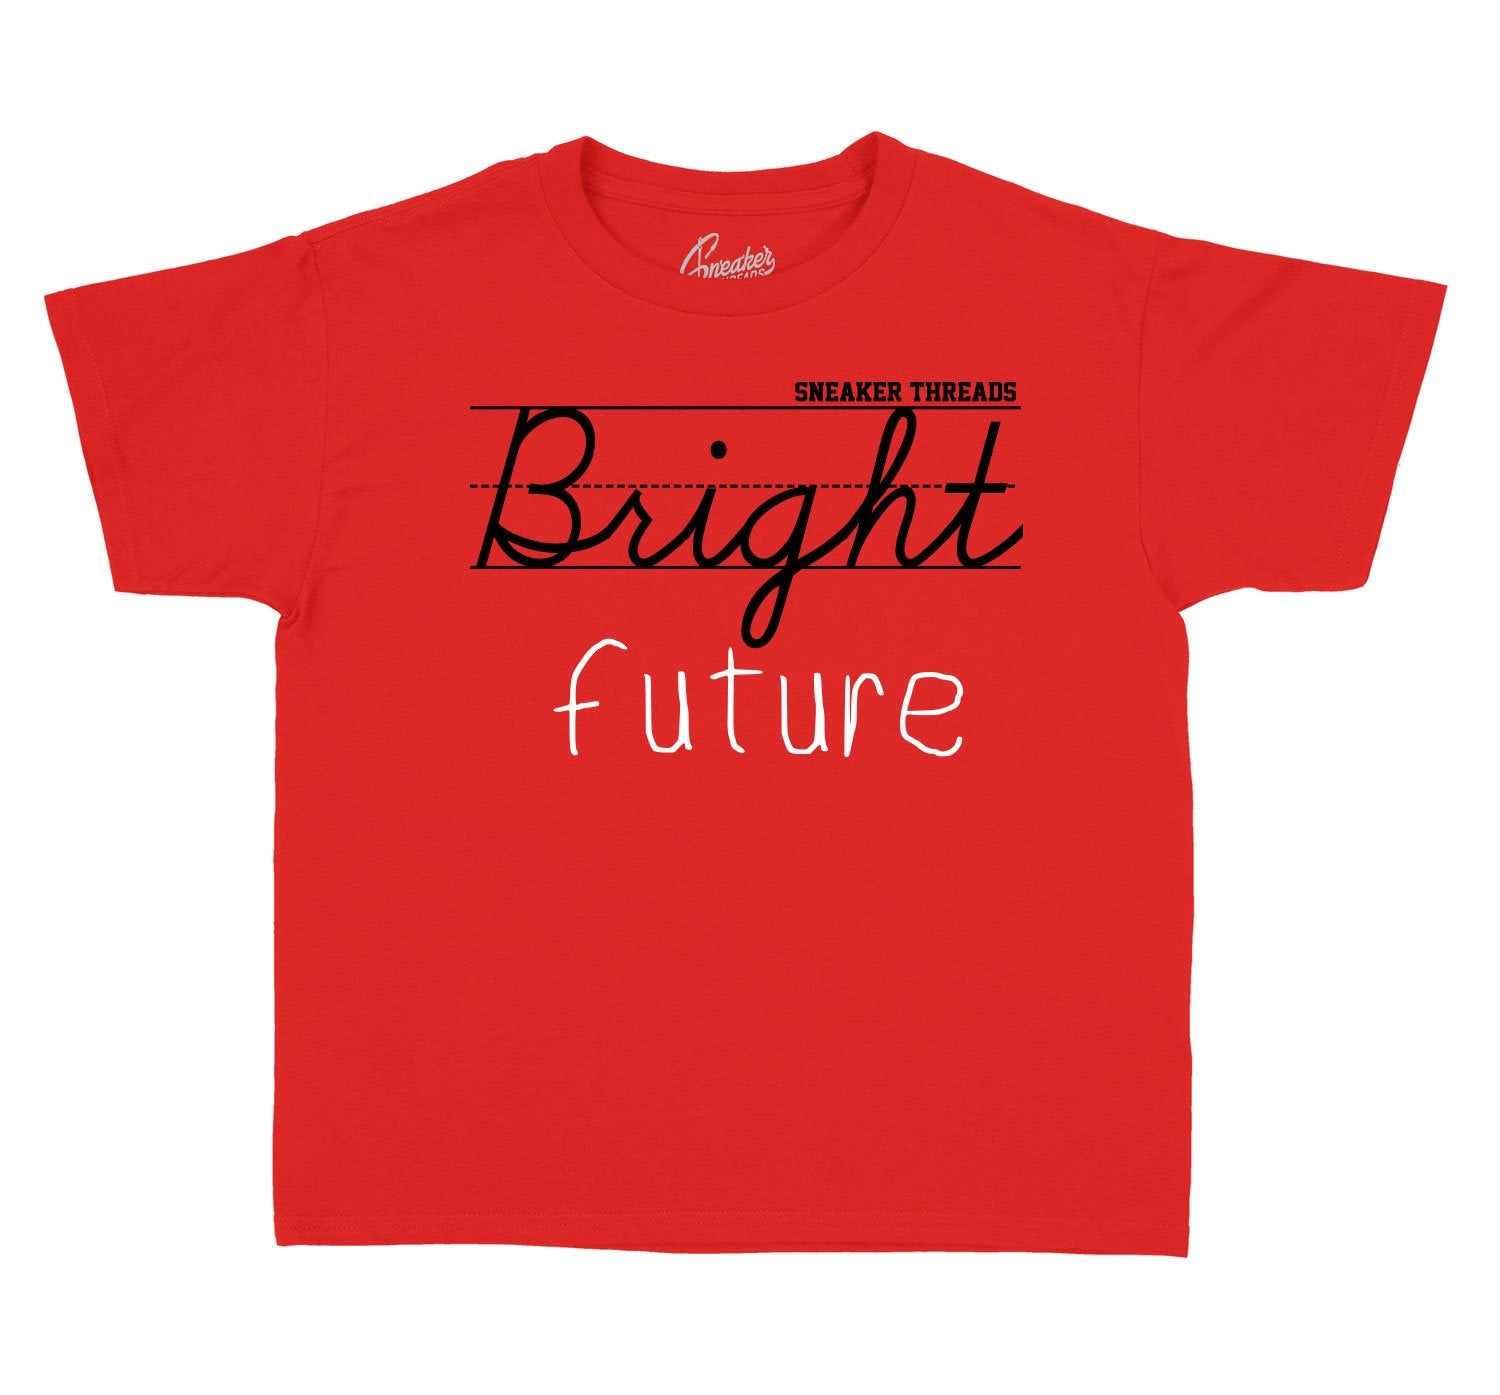 Kids Jordan 11 bred sneaker tees match | bright future shirts match